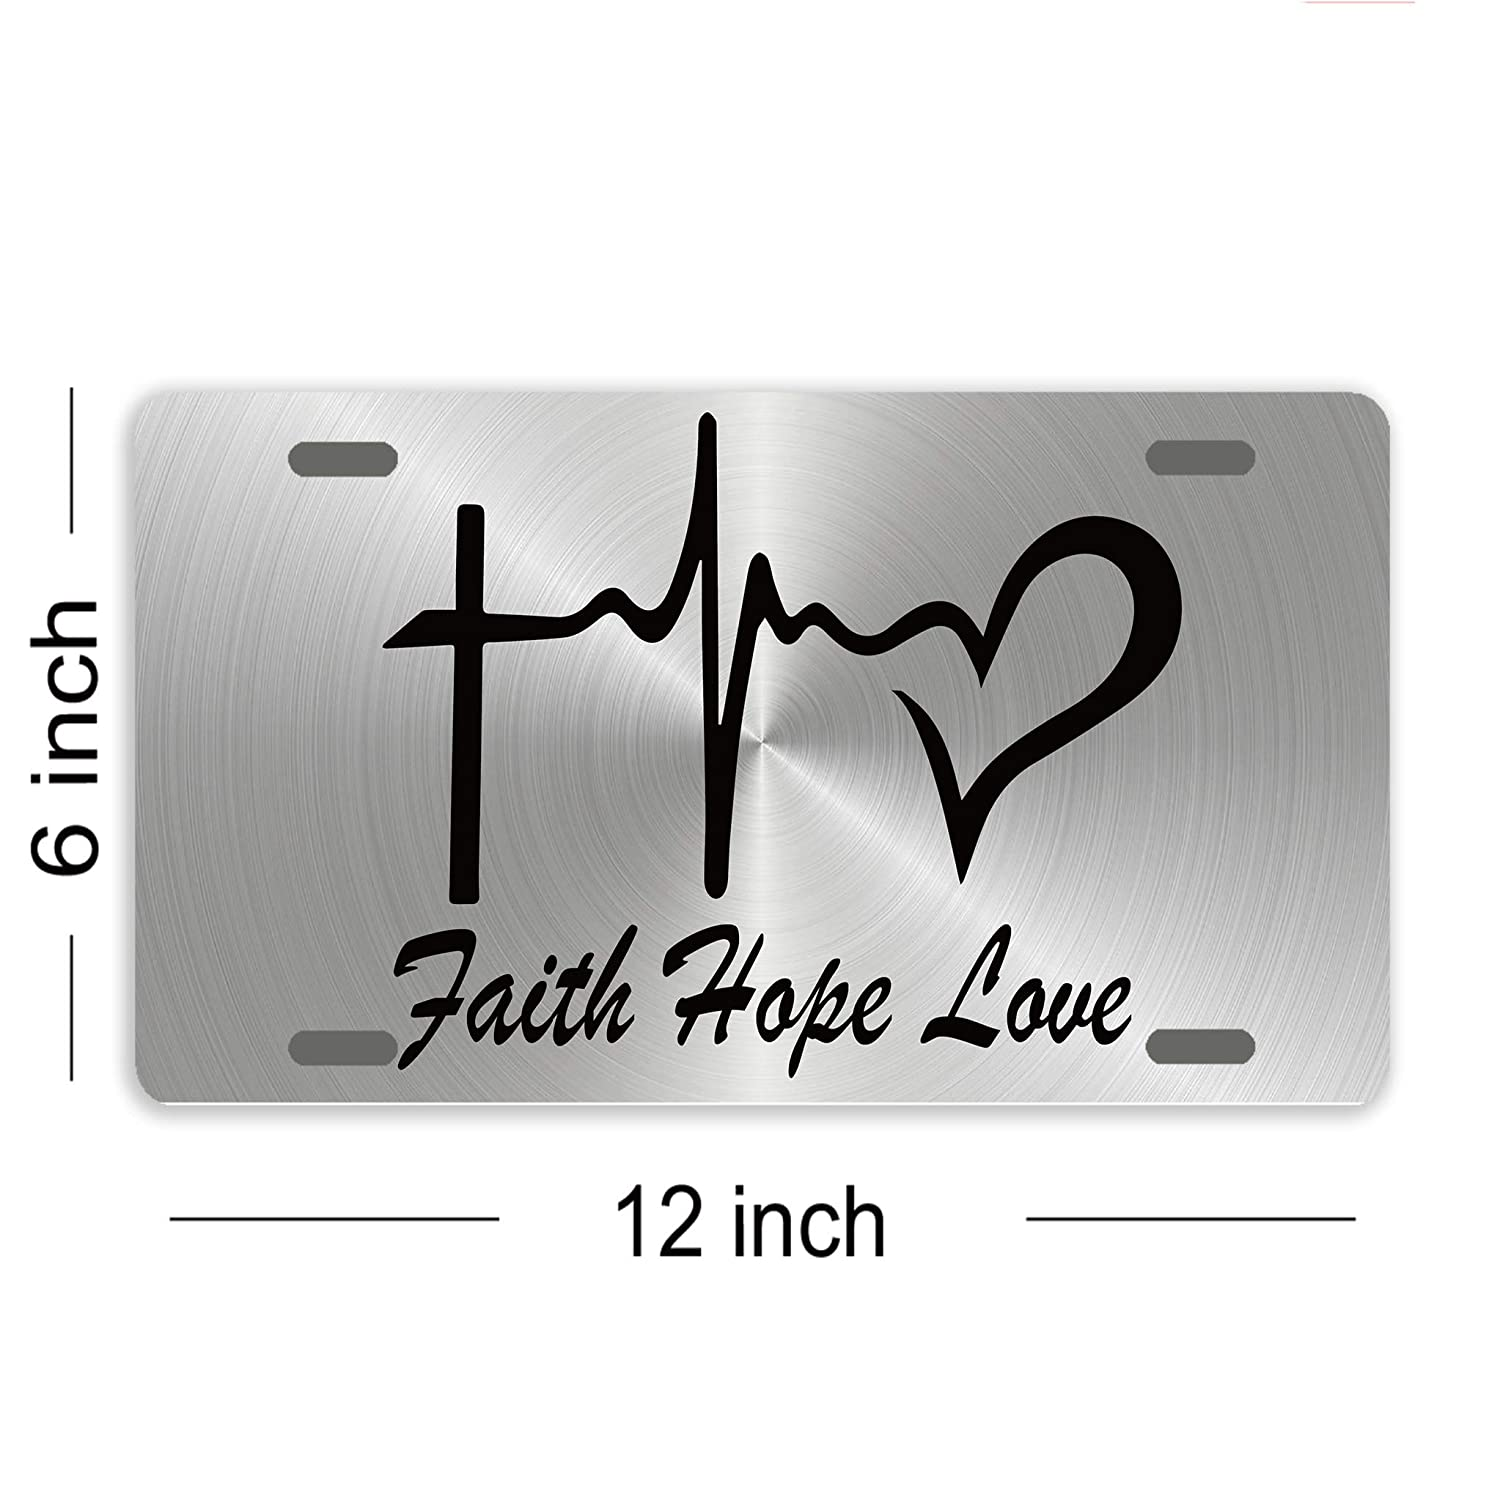 Eprocase License Plate Cover Novelty Tag Metal Aluminum Car Plate Decorative Car Tag Sign Auto Tag Front License Plate 4 Holes 12 X 6 -Faith Hope Love 01